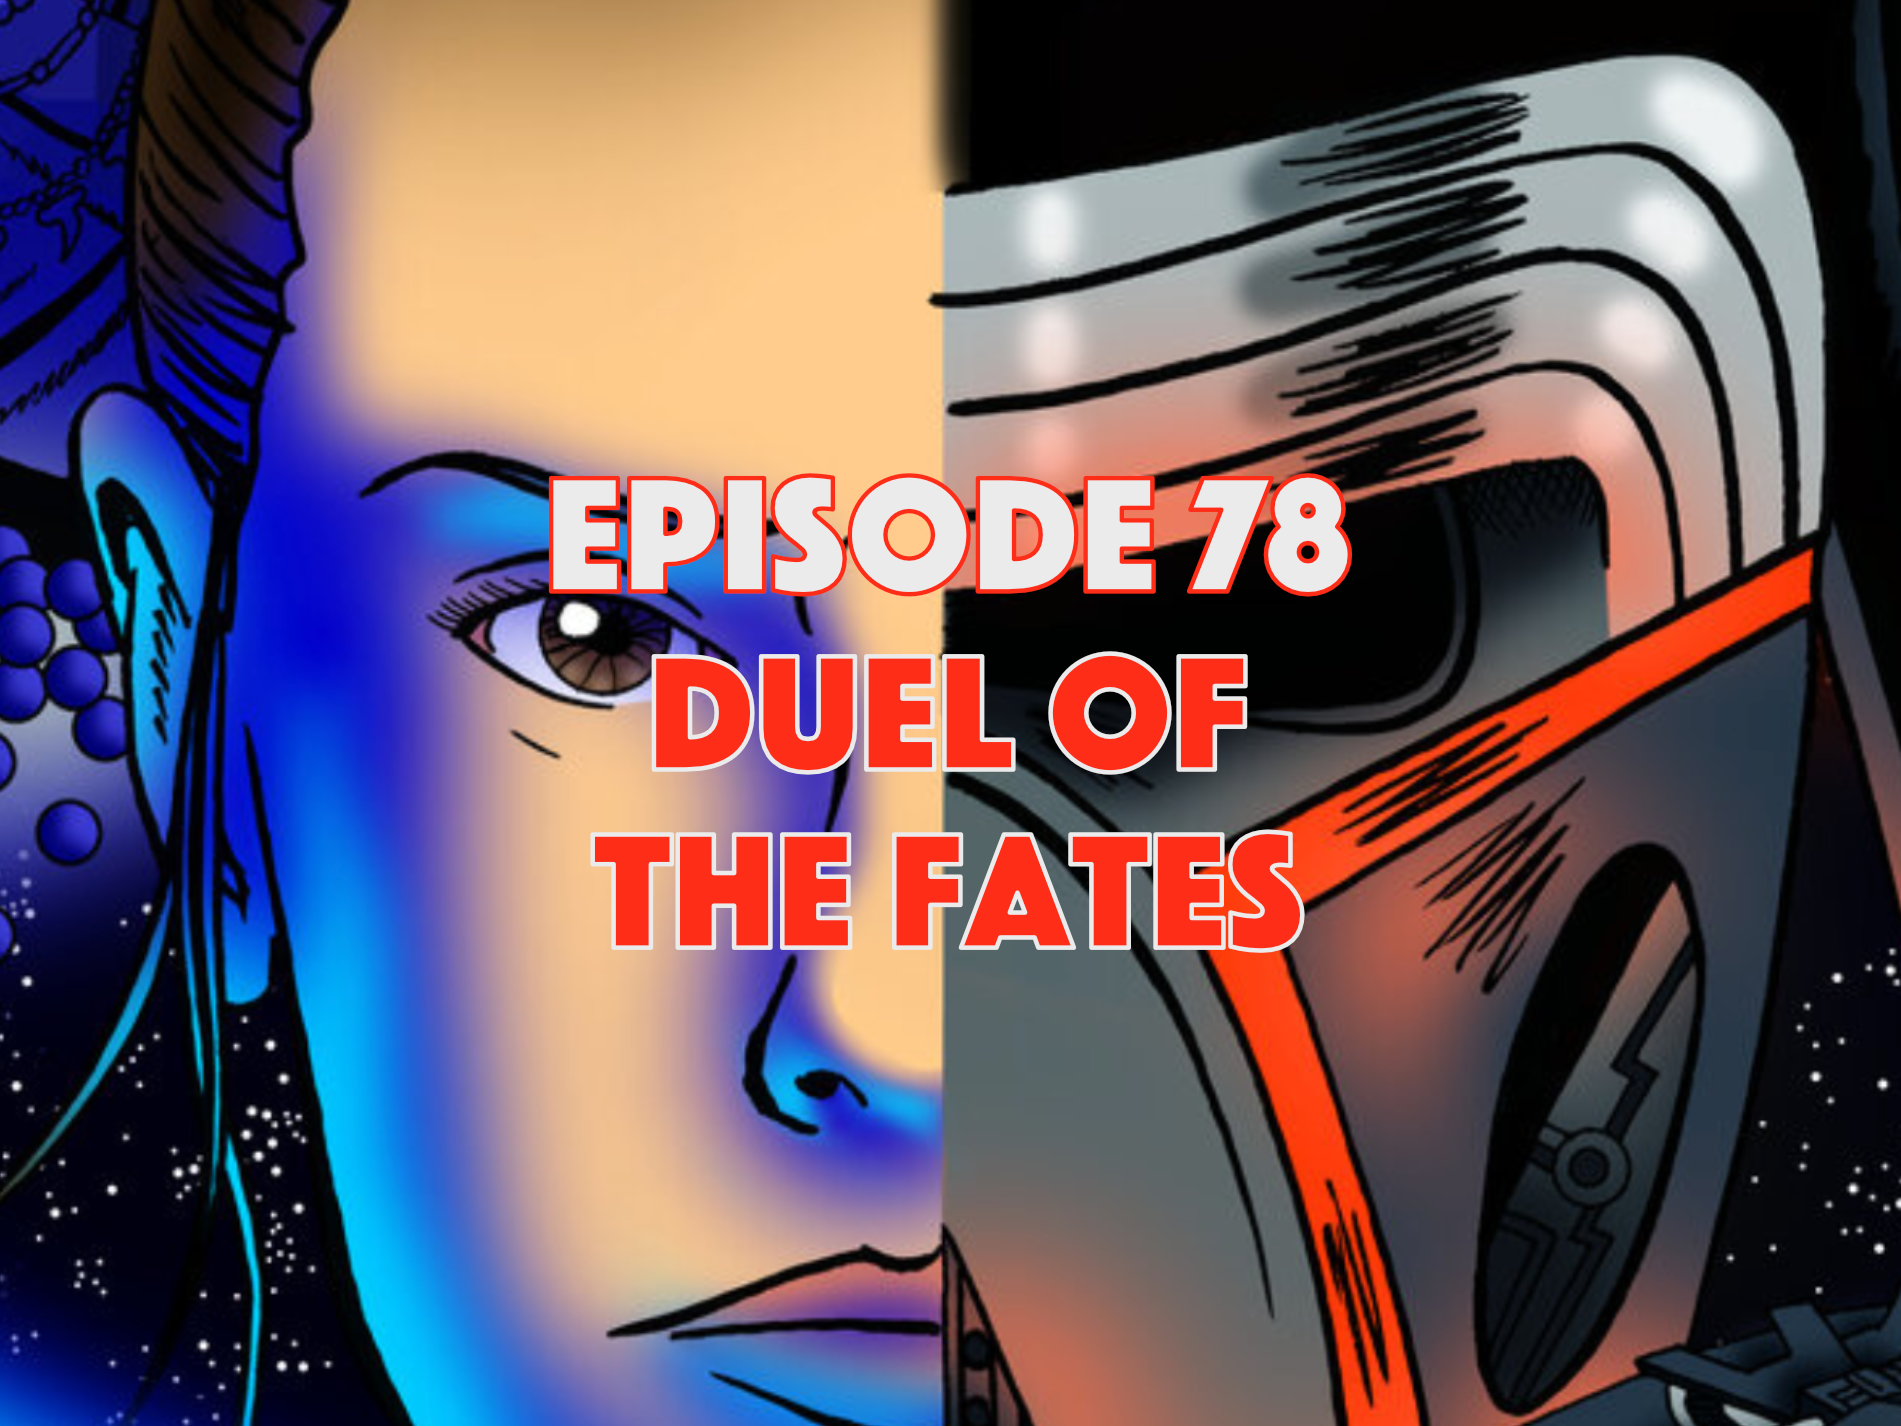 Duel of the Fates, Star Wars, Graphic Novel Explorers Club, Comic Book Podcast, Graphic Novel PodcastMoney Shot, Money Shot Vol 1, Graphic Novel Explorers Club, Comic Book Podcast, Graphic Novel Podcast